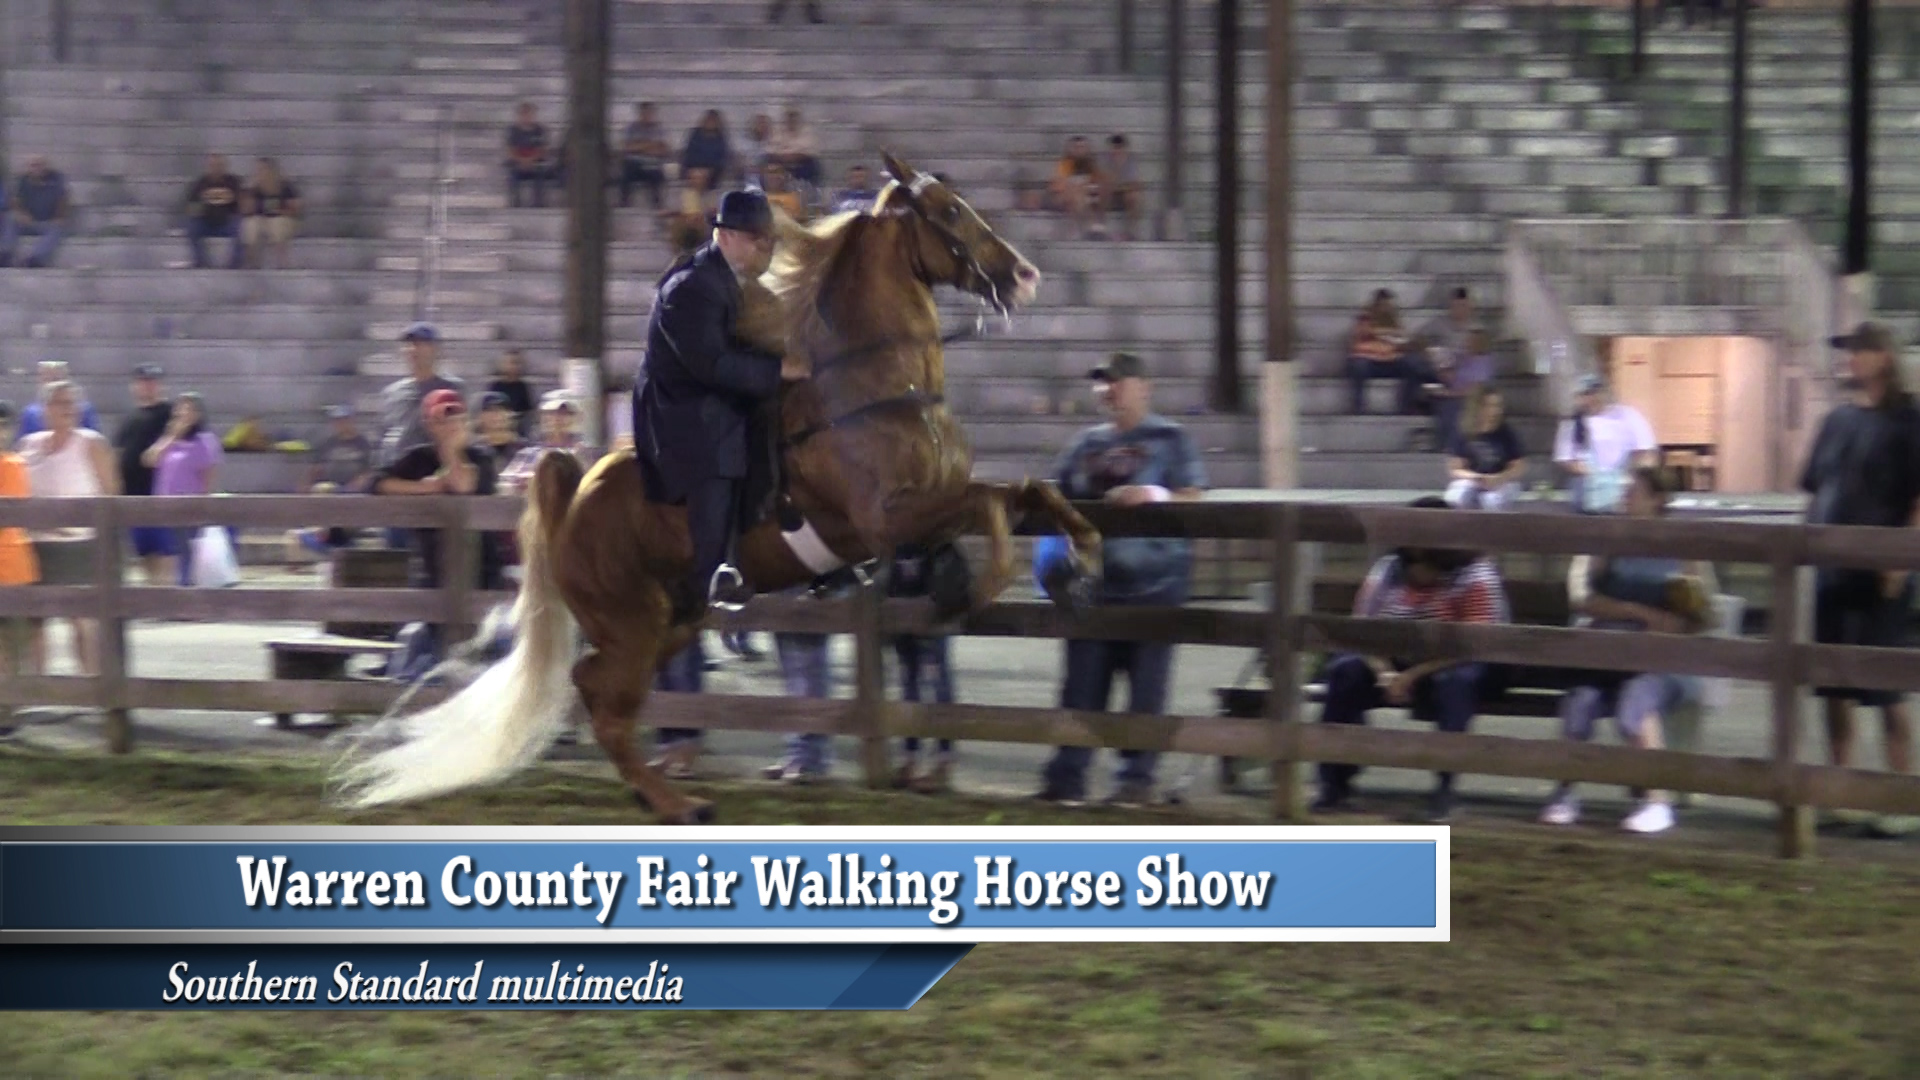 VIDEO - Warren County Fair Horse Show highlights